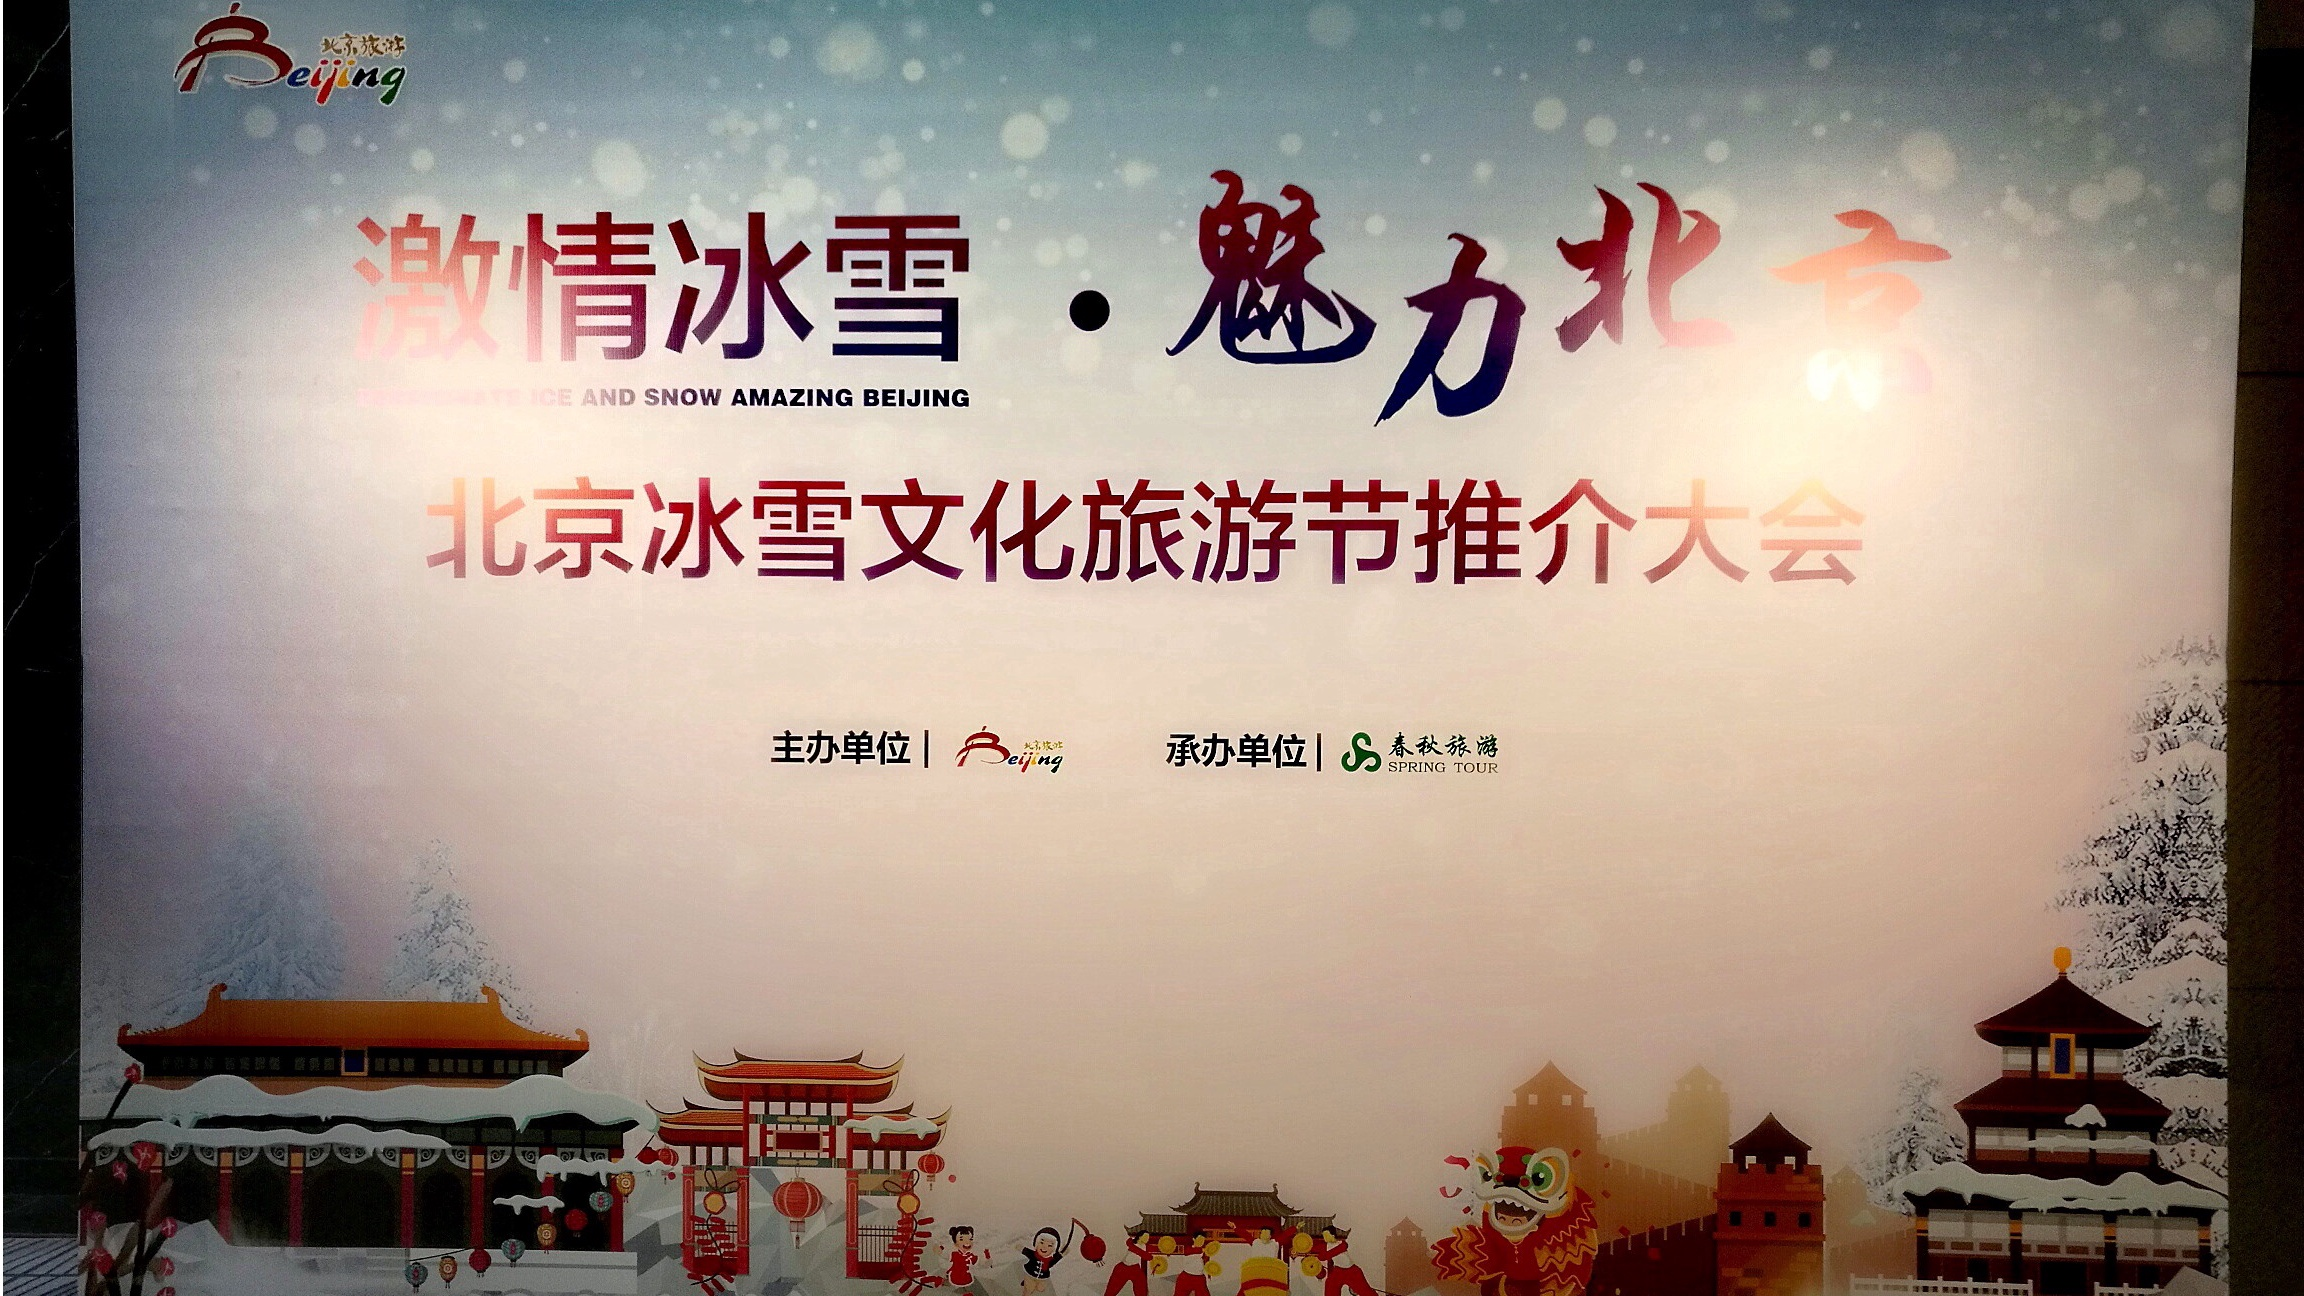 Beijing Launched Various Winter Tourism Itineraries